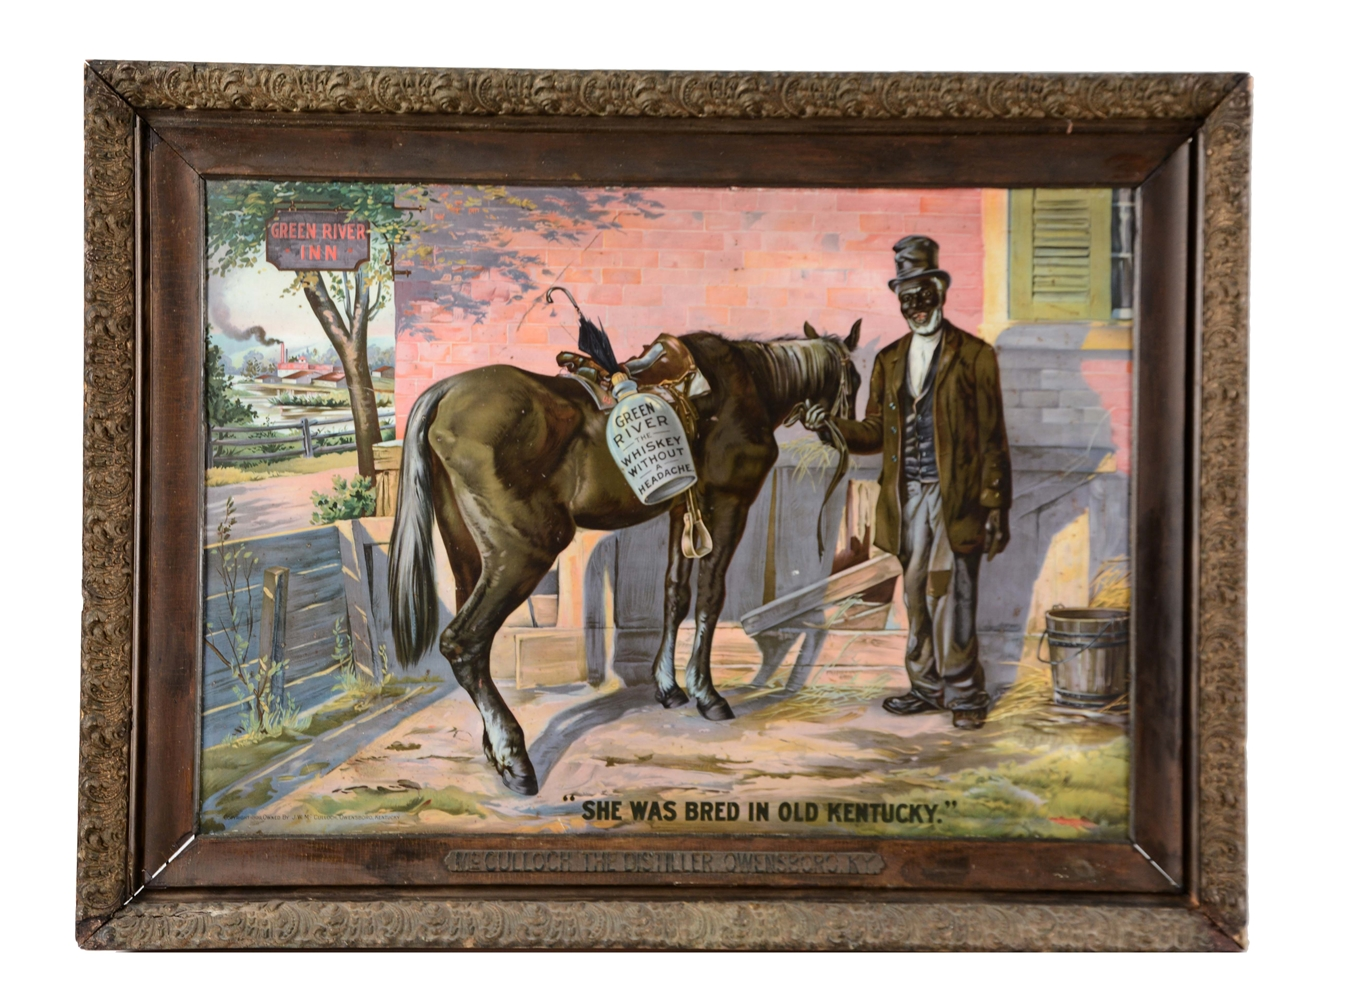 1899 GREEN RIVER WHISKEY TIN SIGN.